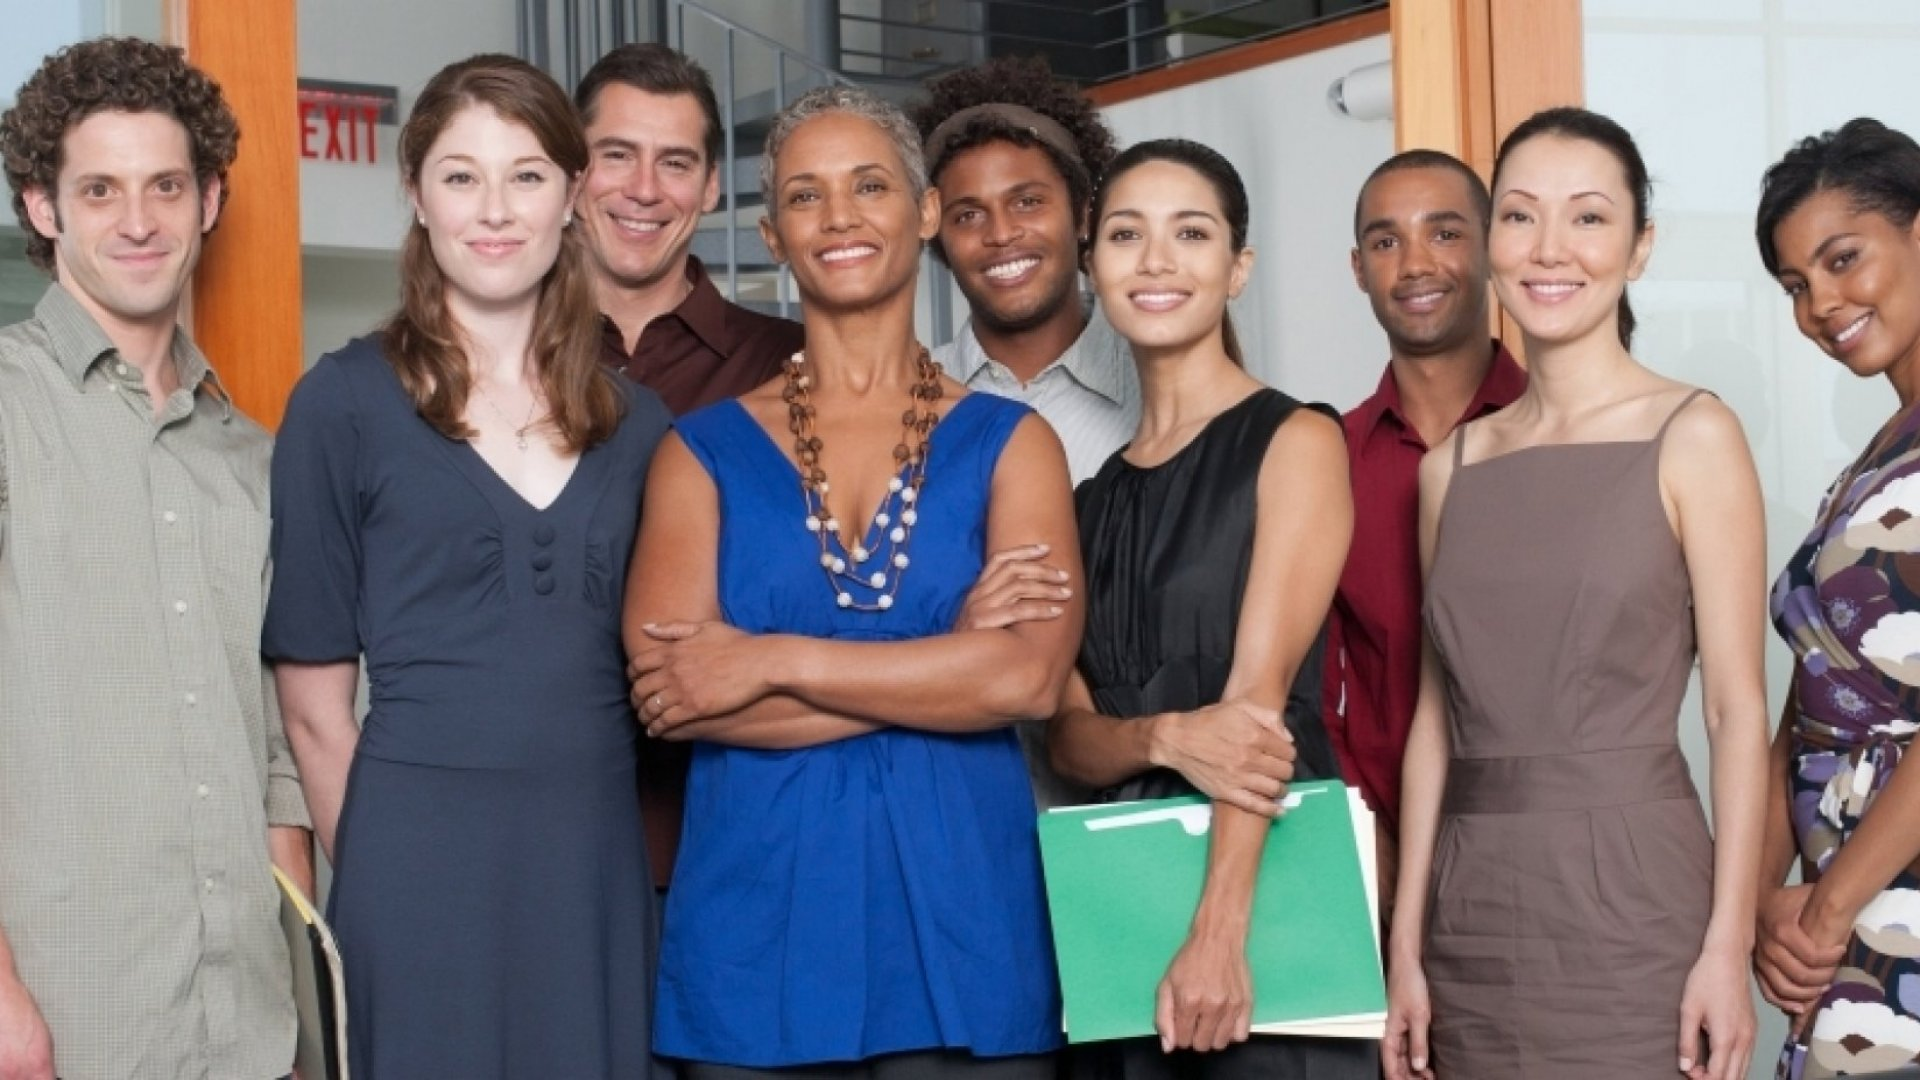 4 Steps That Will Help Increase the Diversity of Your Workforce